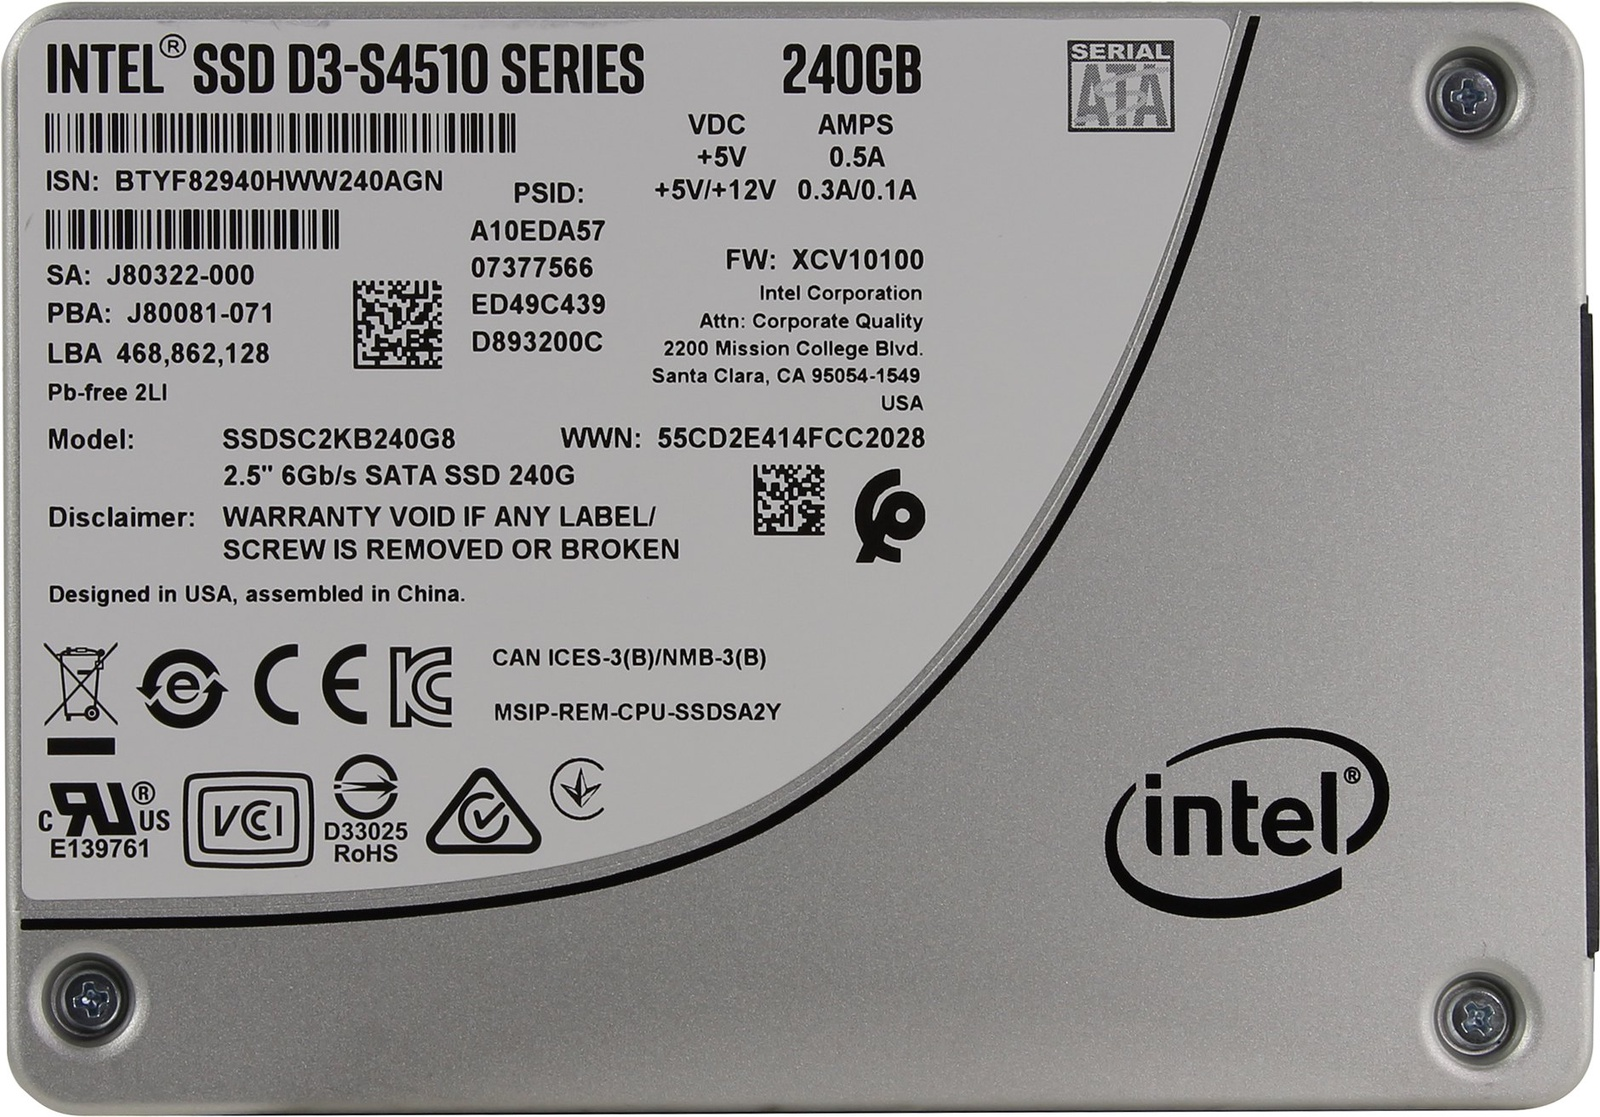 SSD Intel 240GB D3-S4510 Series, SSDSC2KB240G801 стоимость